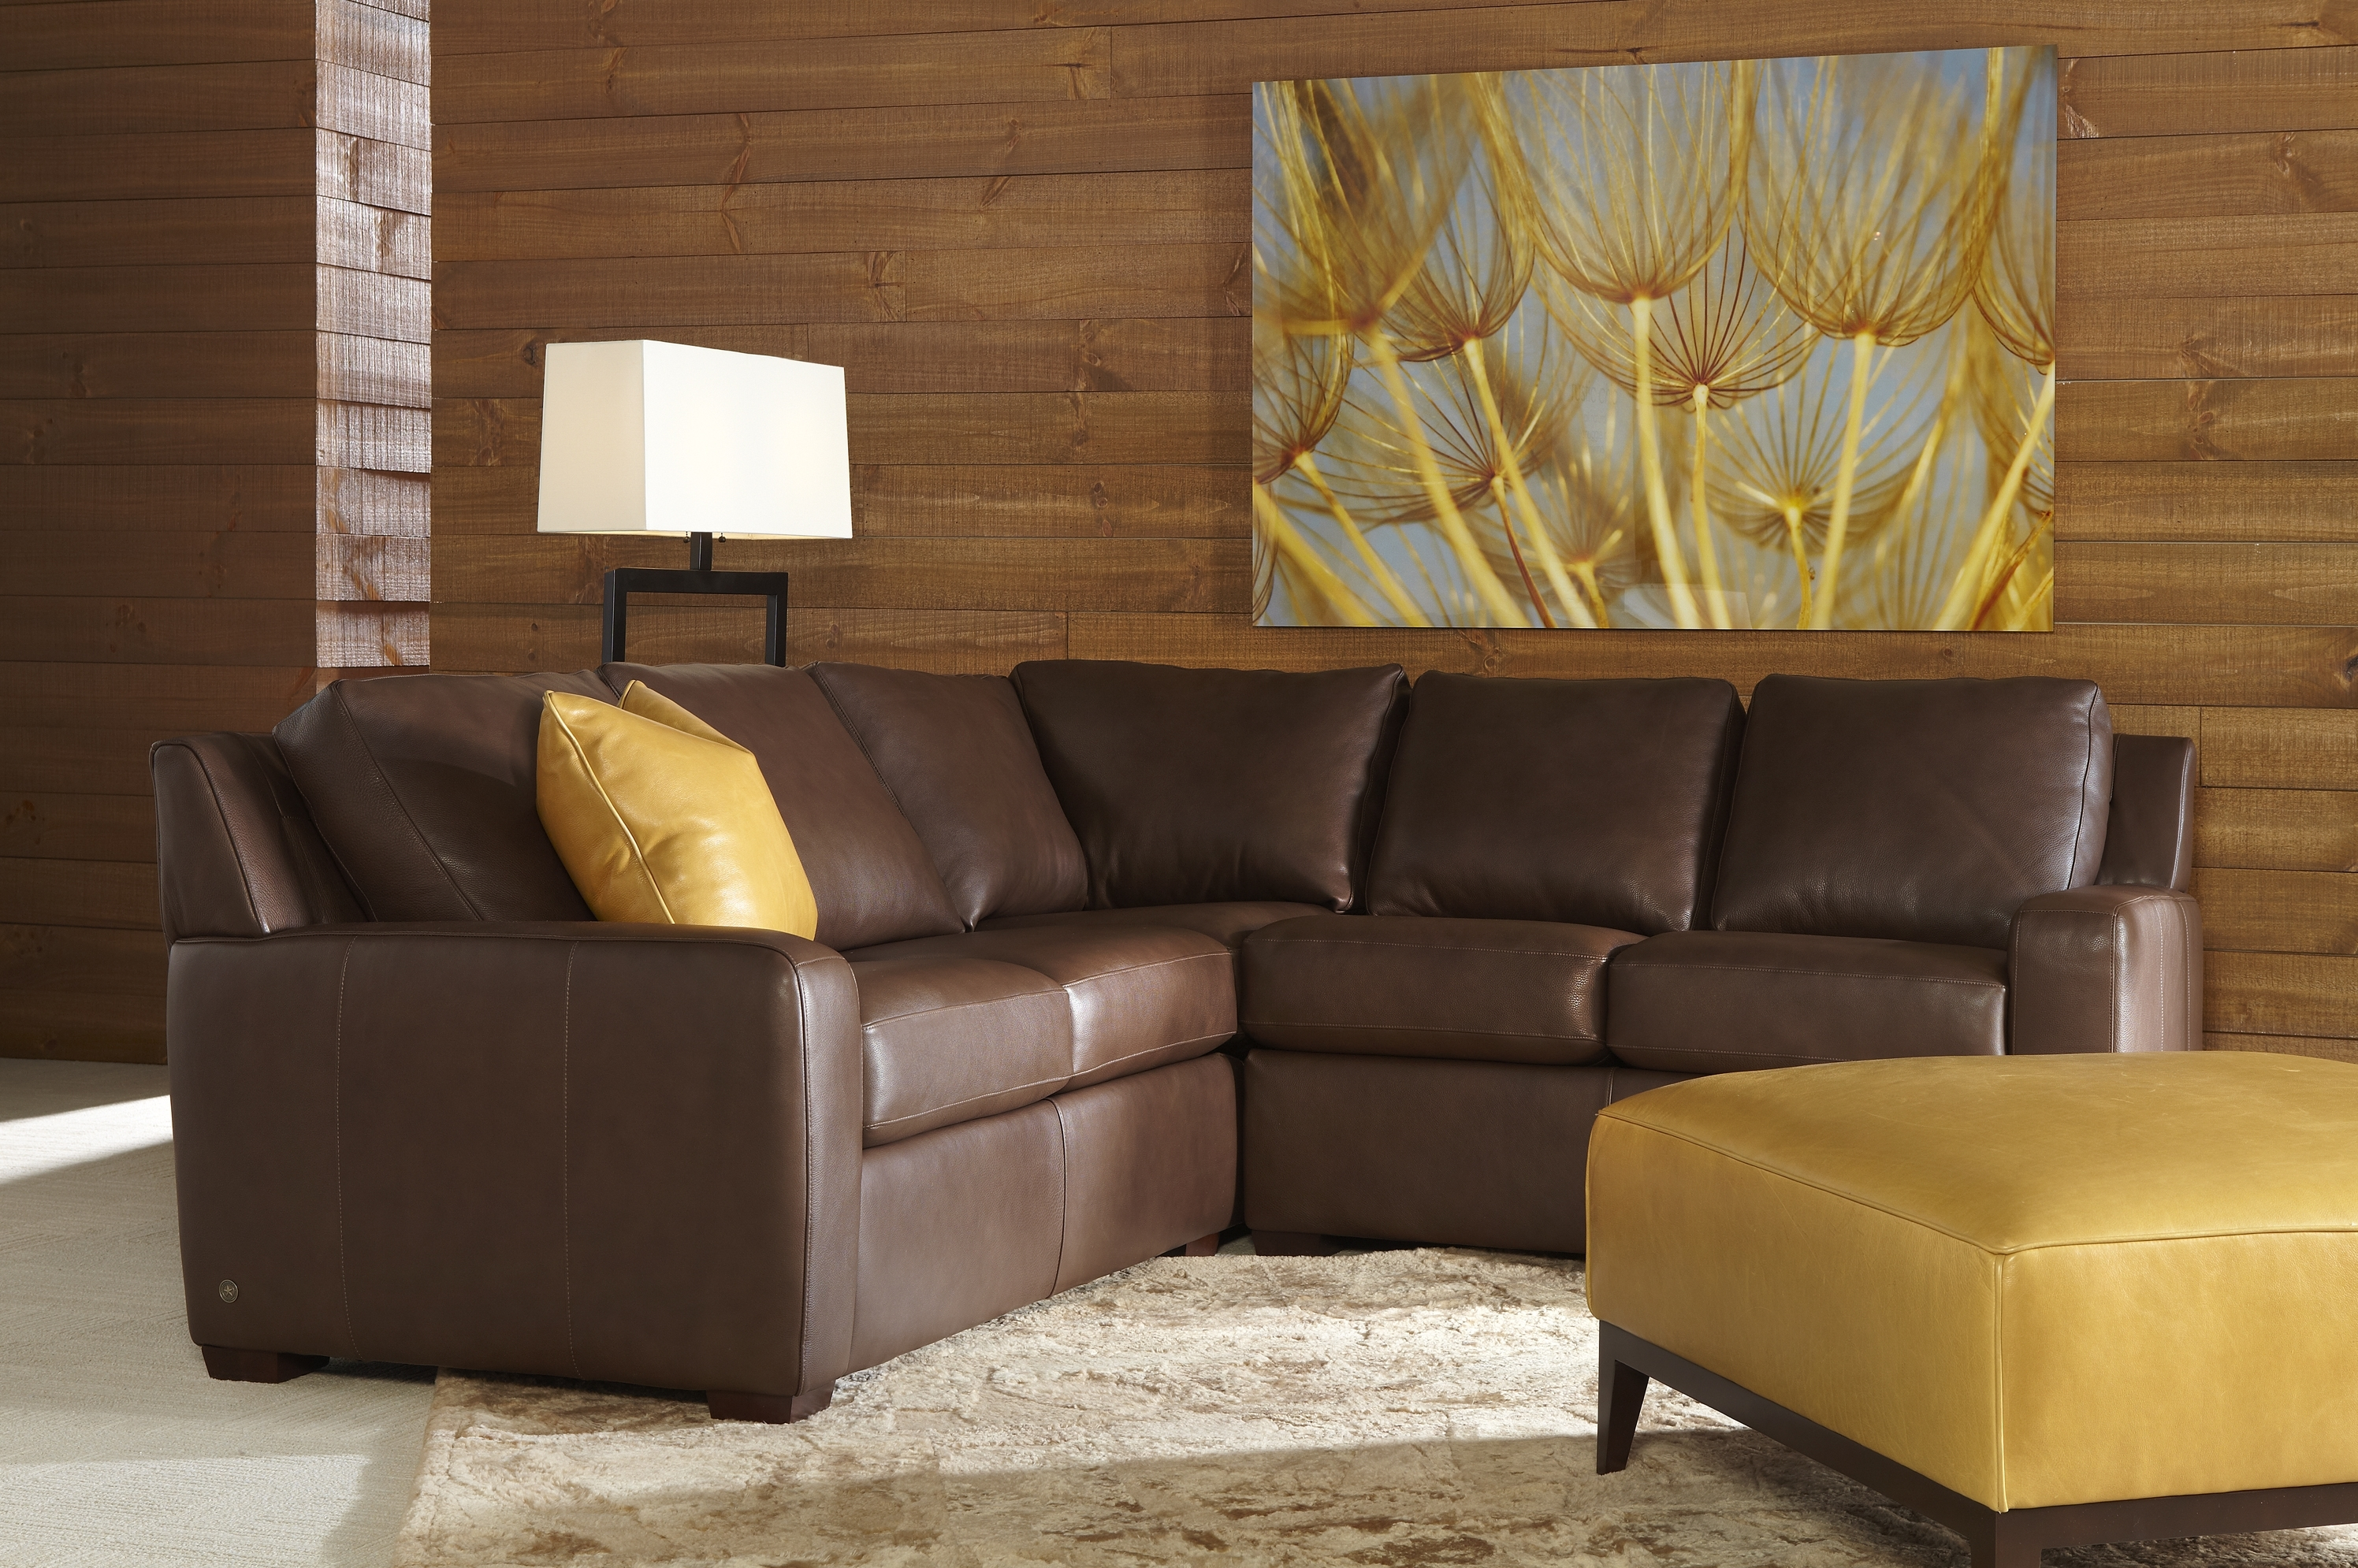 Trendy Sectional Sofas – Elegance And Style Tailored Just For Youand Inside Made In Usa Sectional Sofas (View 15 of 15)